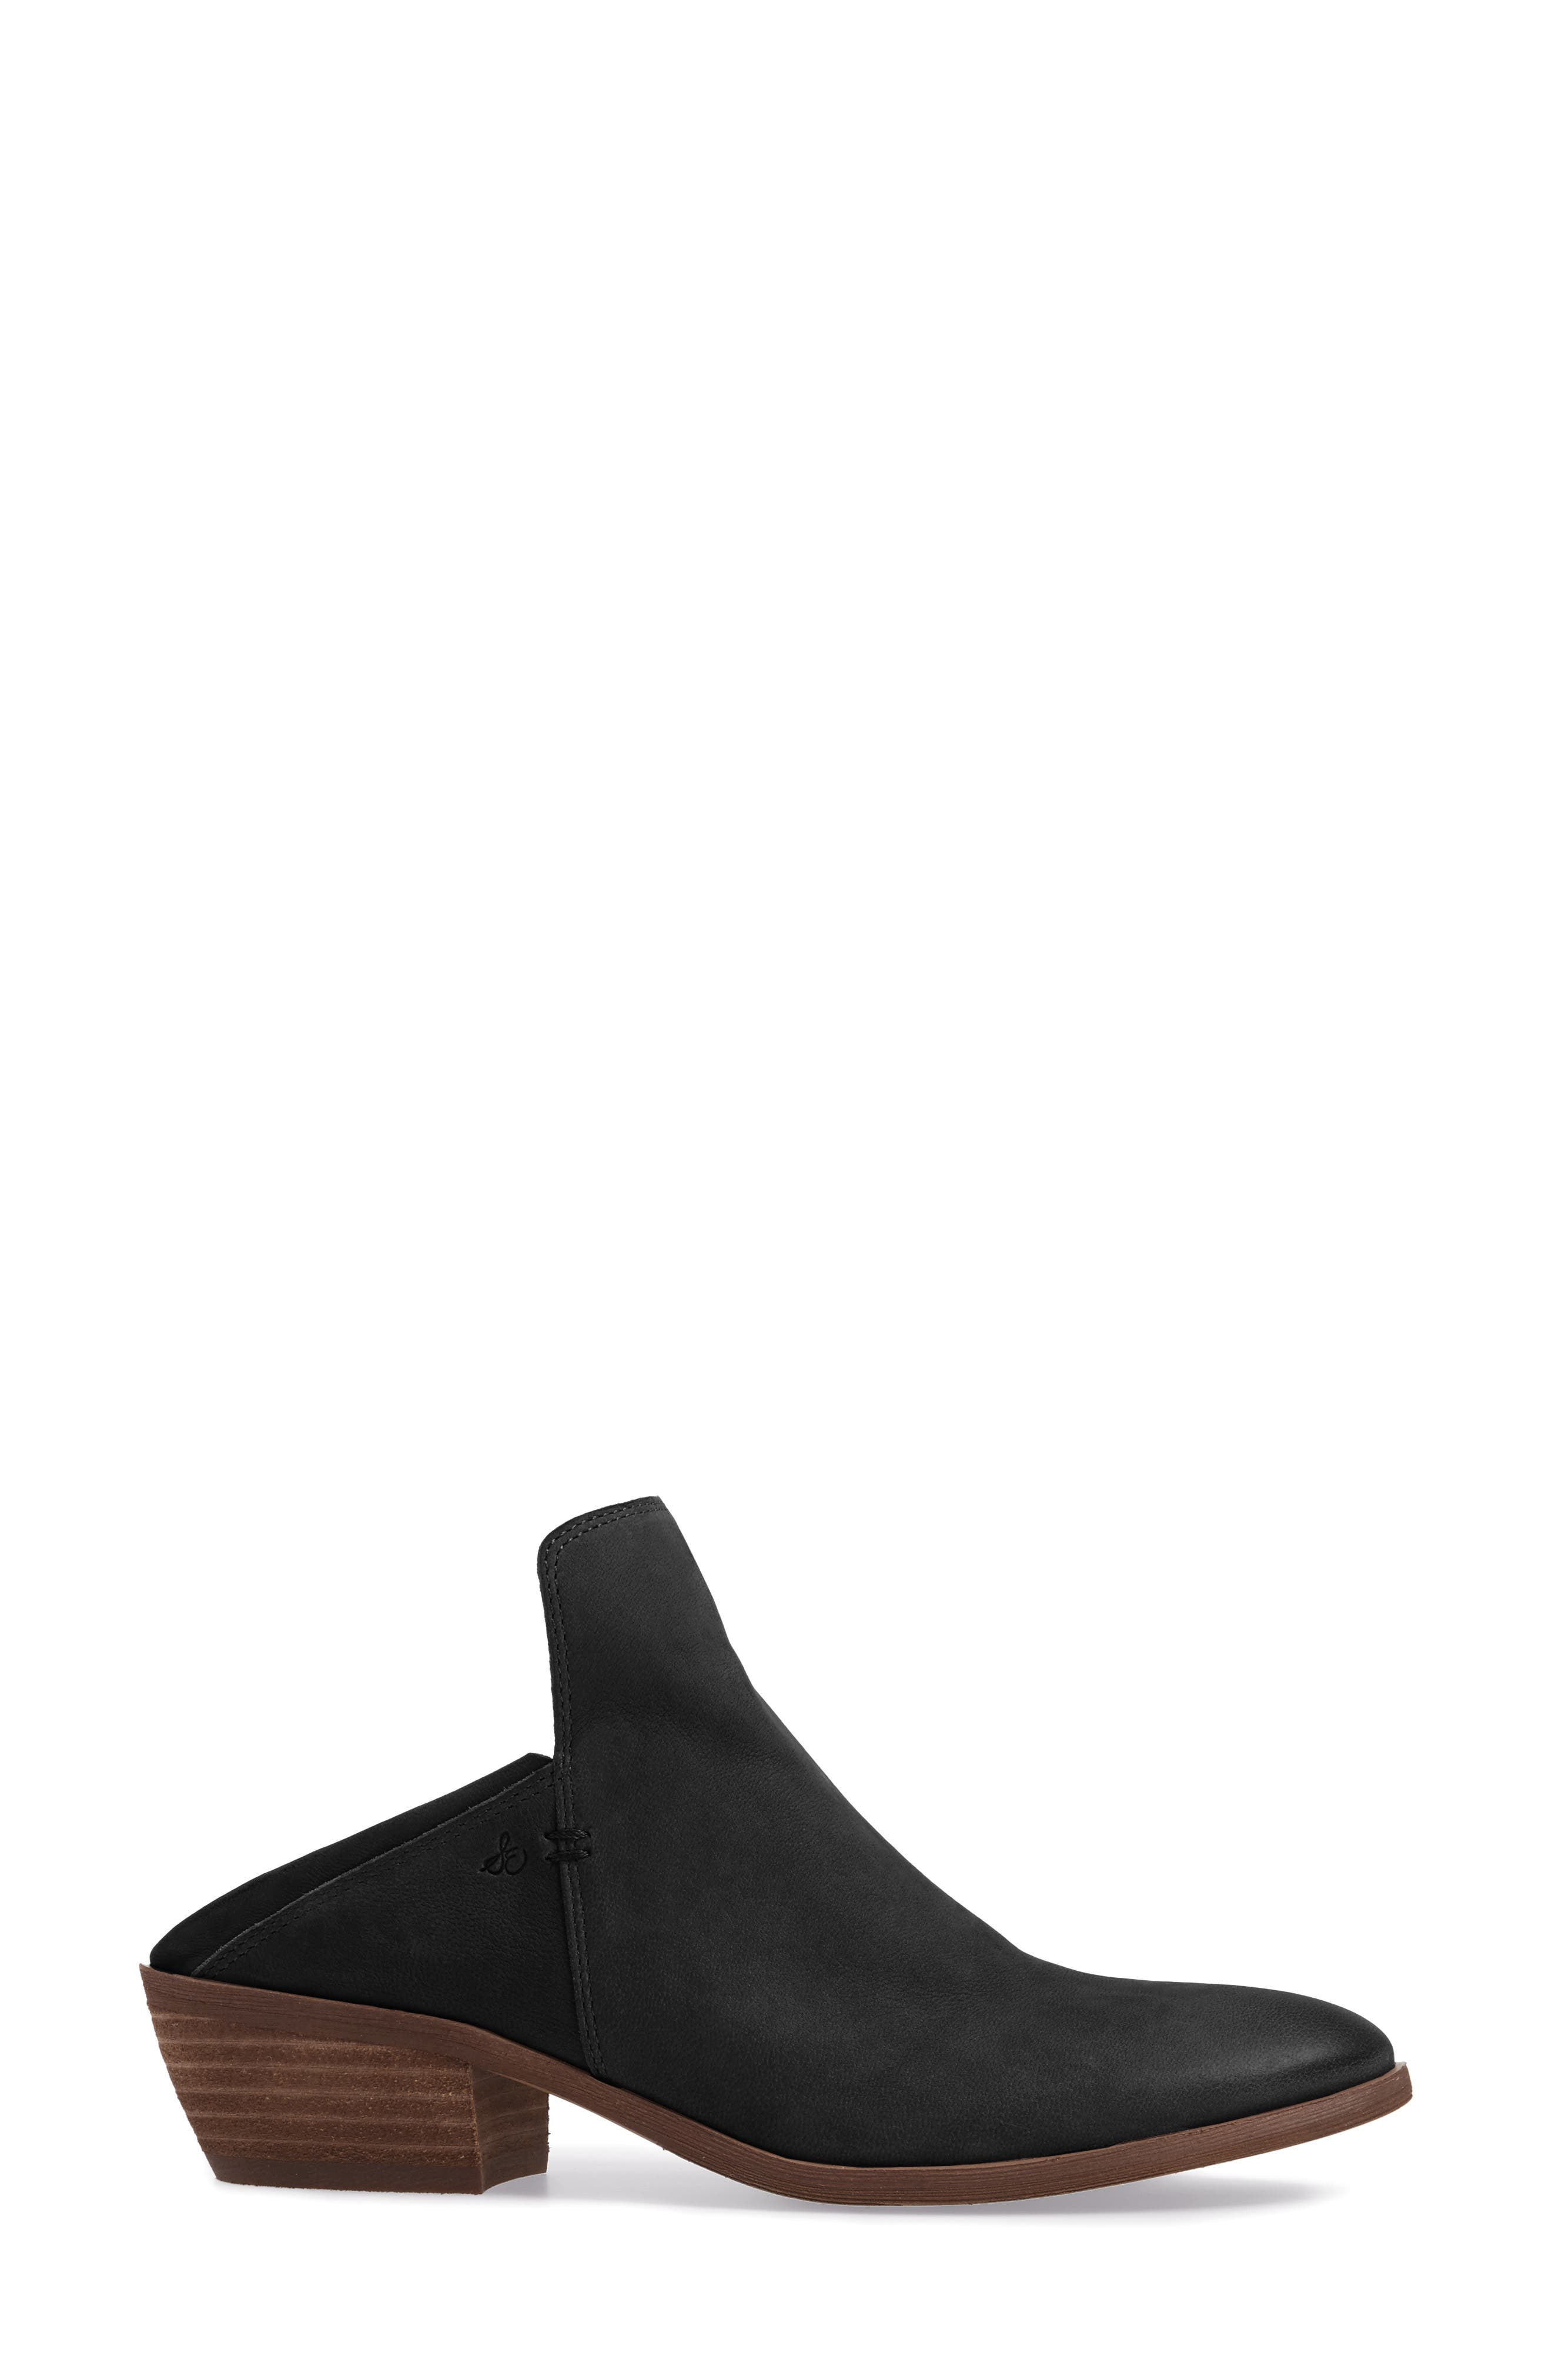 Prentice Convertible Ankle Boot,                             Alternate thumbnail 13, color,